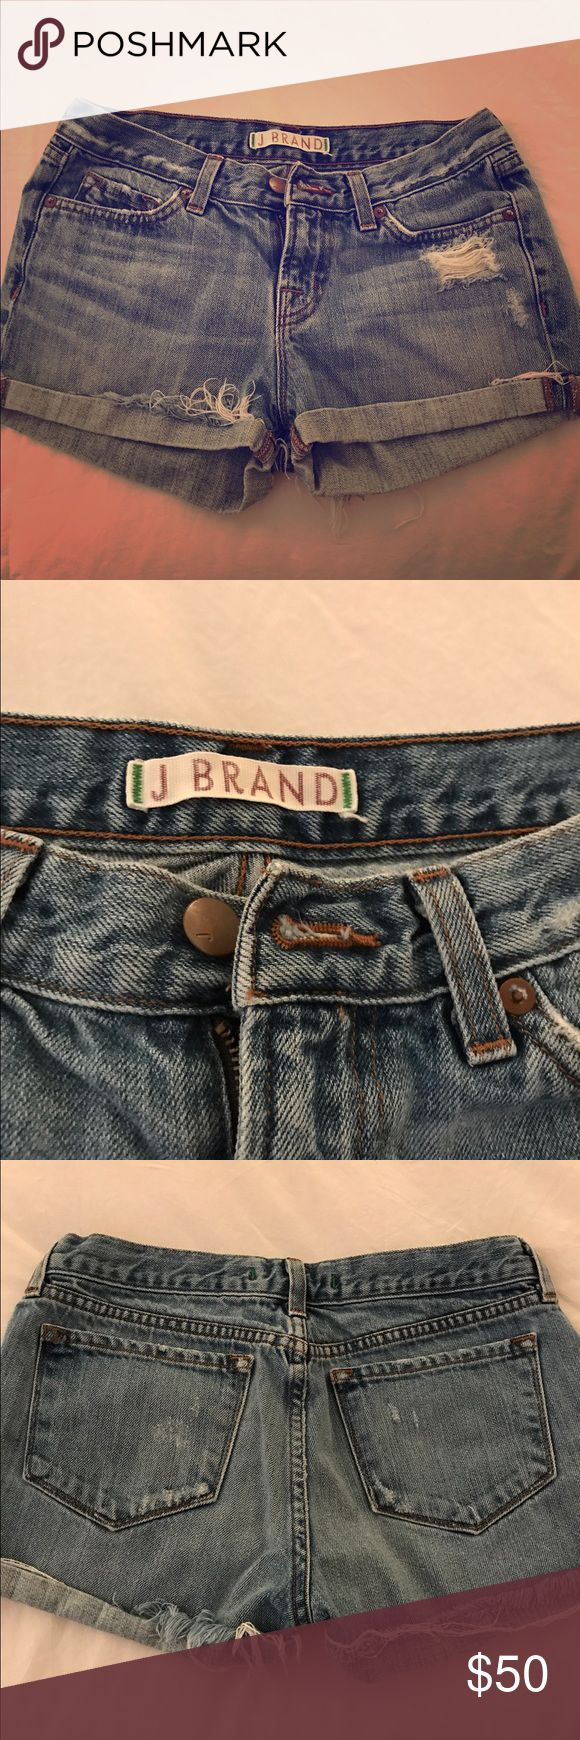 J Brand Shorts Excellent condition JBrand Shorts J Brand Shorts Jean Shorts